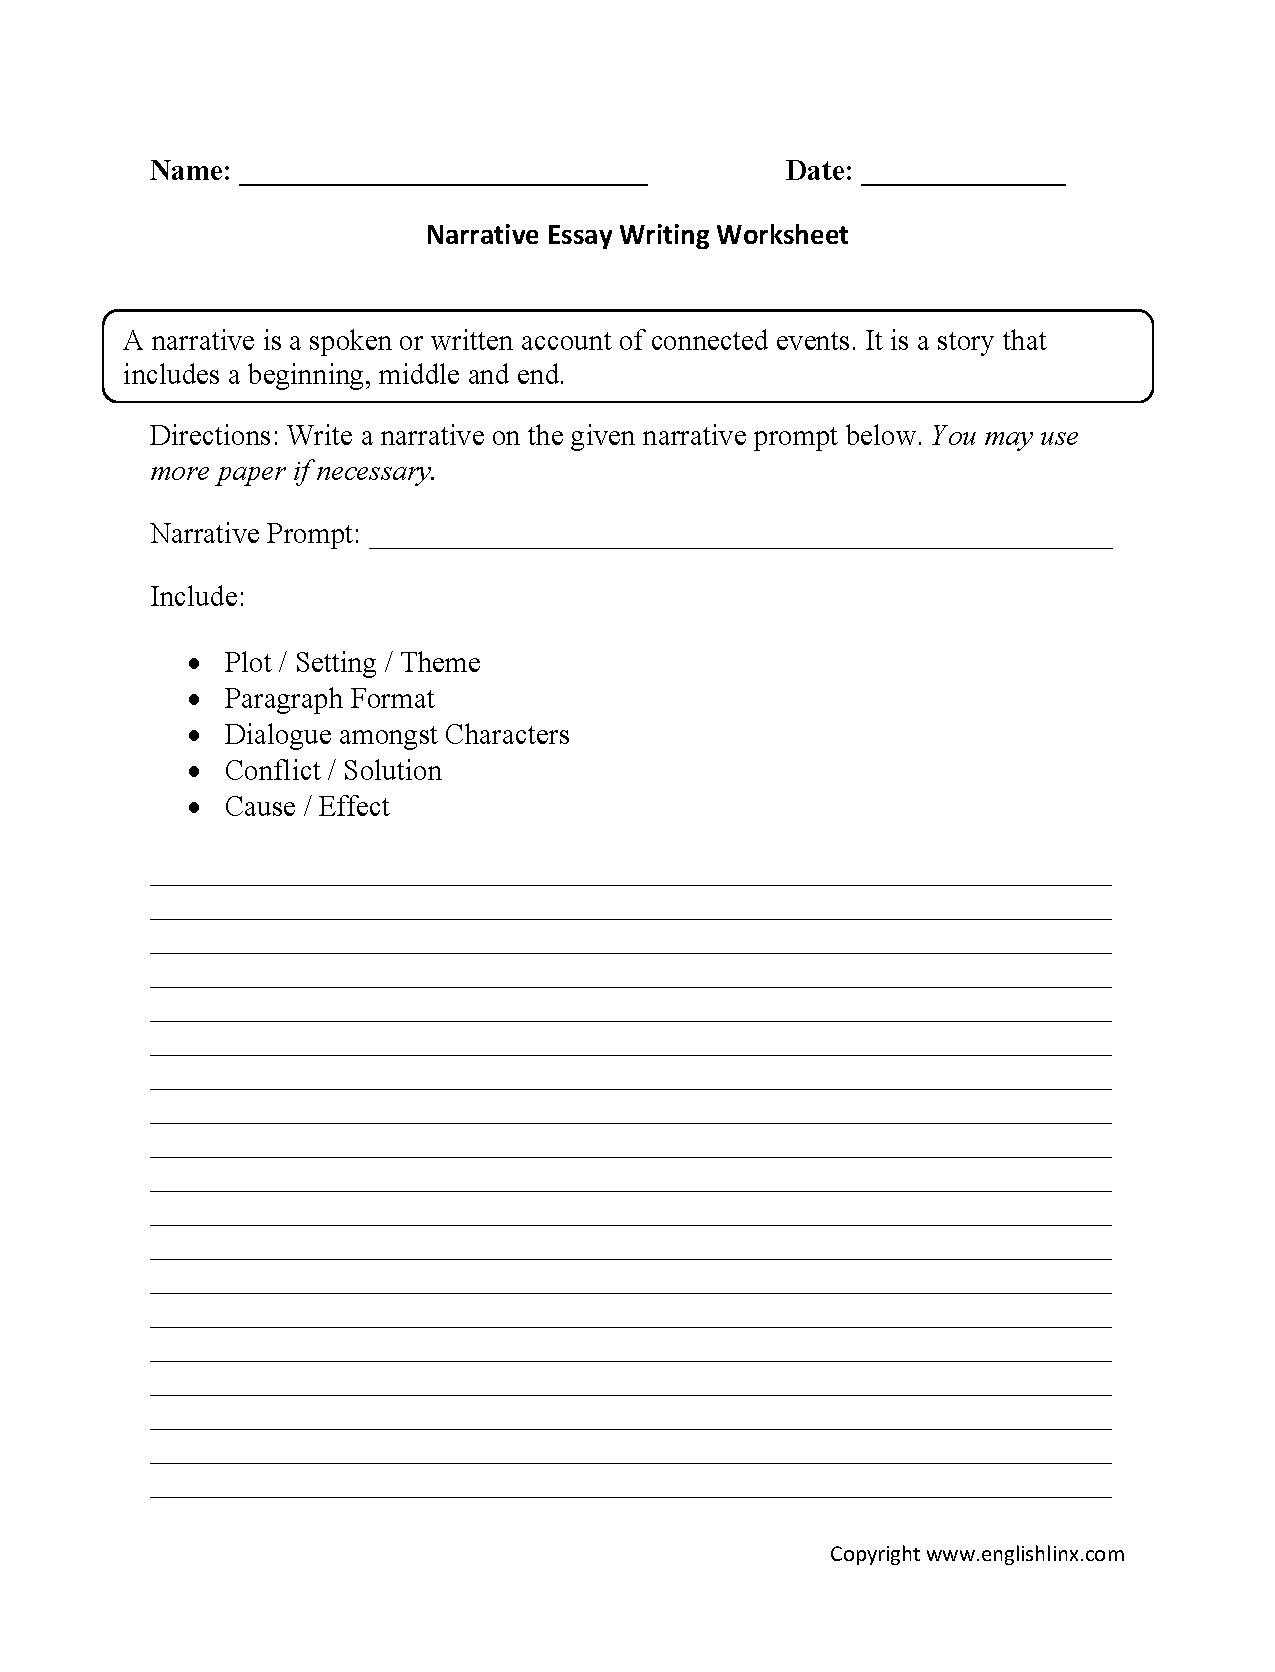 identify parts of an essay worksheet